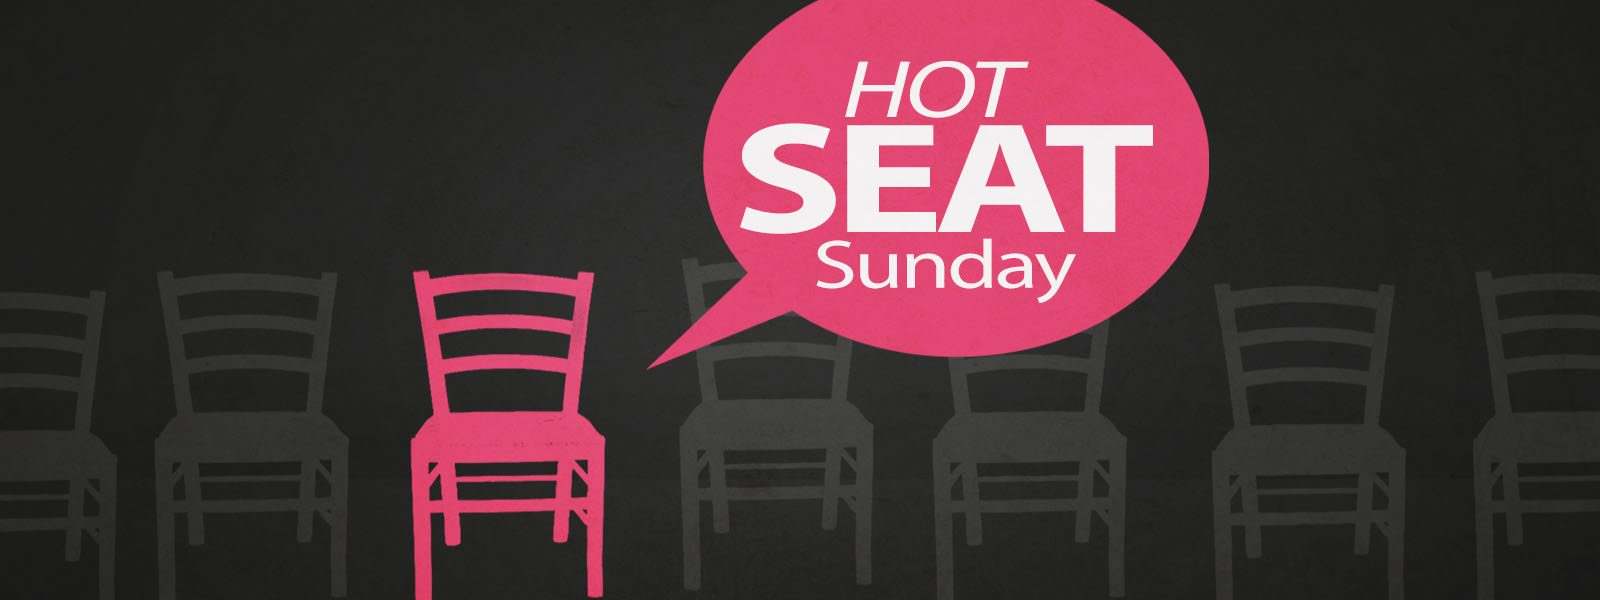 What questions do you have?  It's time to put the pastors on the Hot Seat.